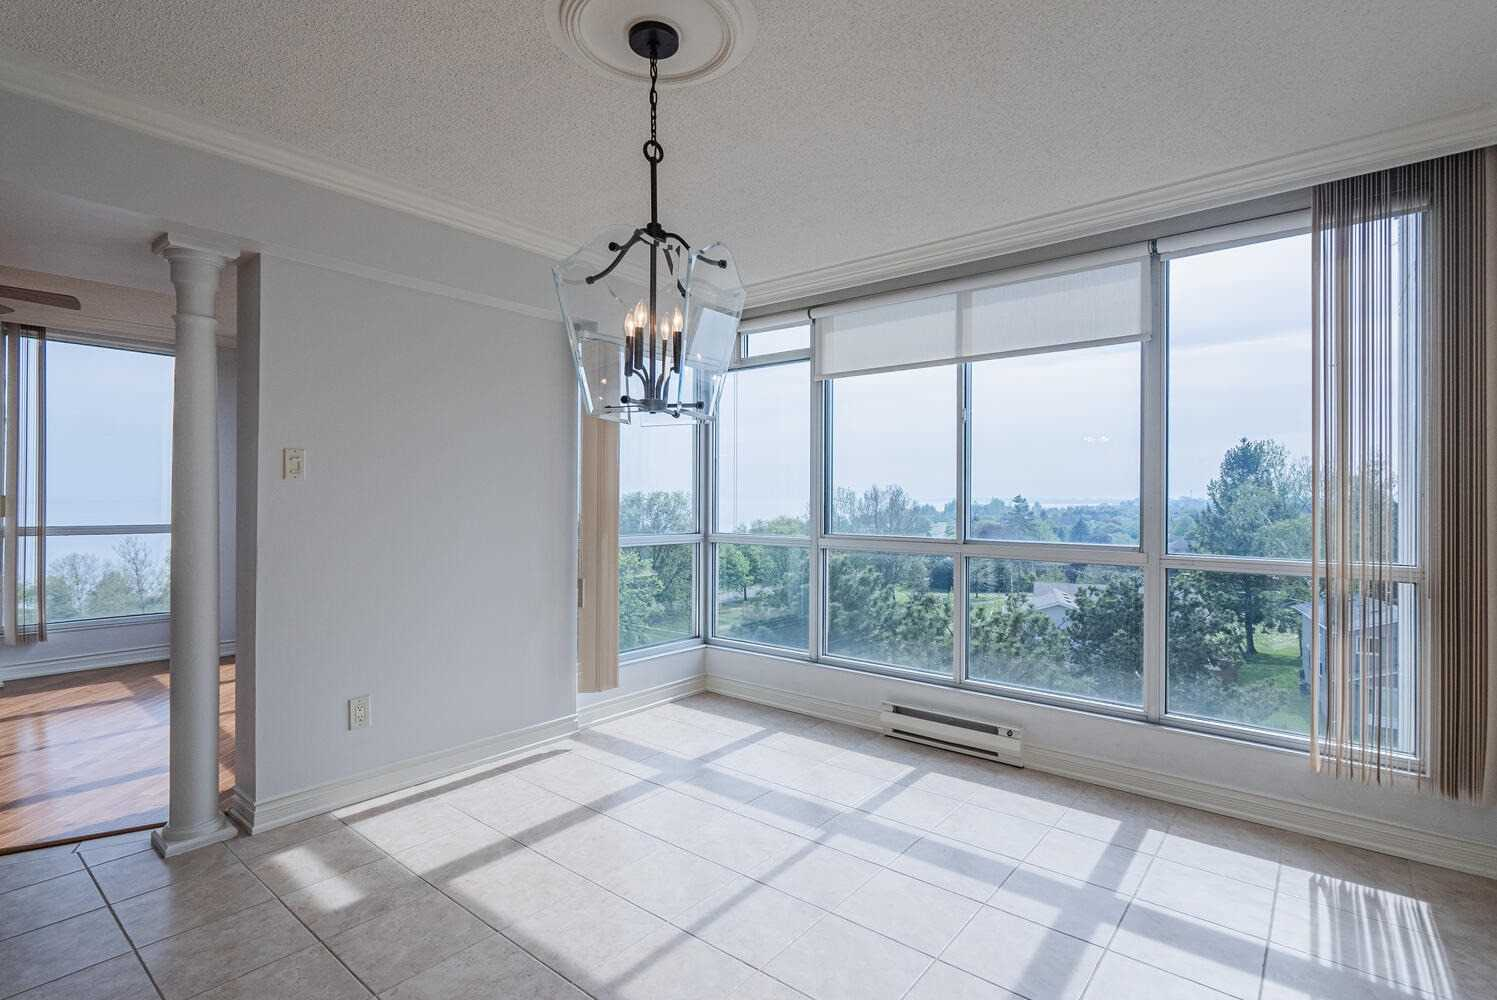 Image 6 of 38 showing inside of 2 Bedroom Condo Apt Apartment for Sale at 70 Cumberland Lane Unit# 503, Ajax L1S7K4